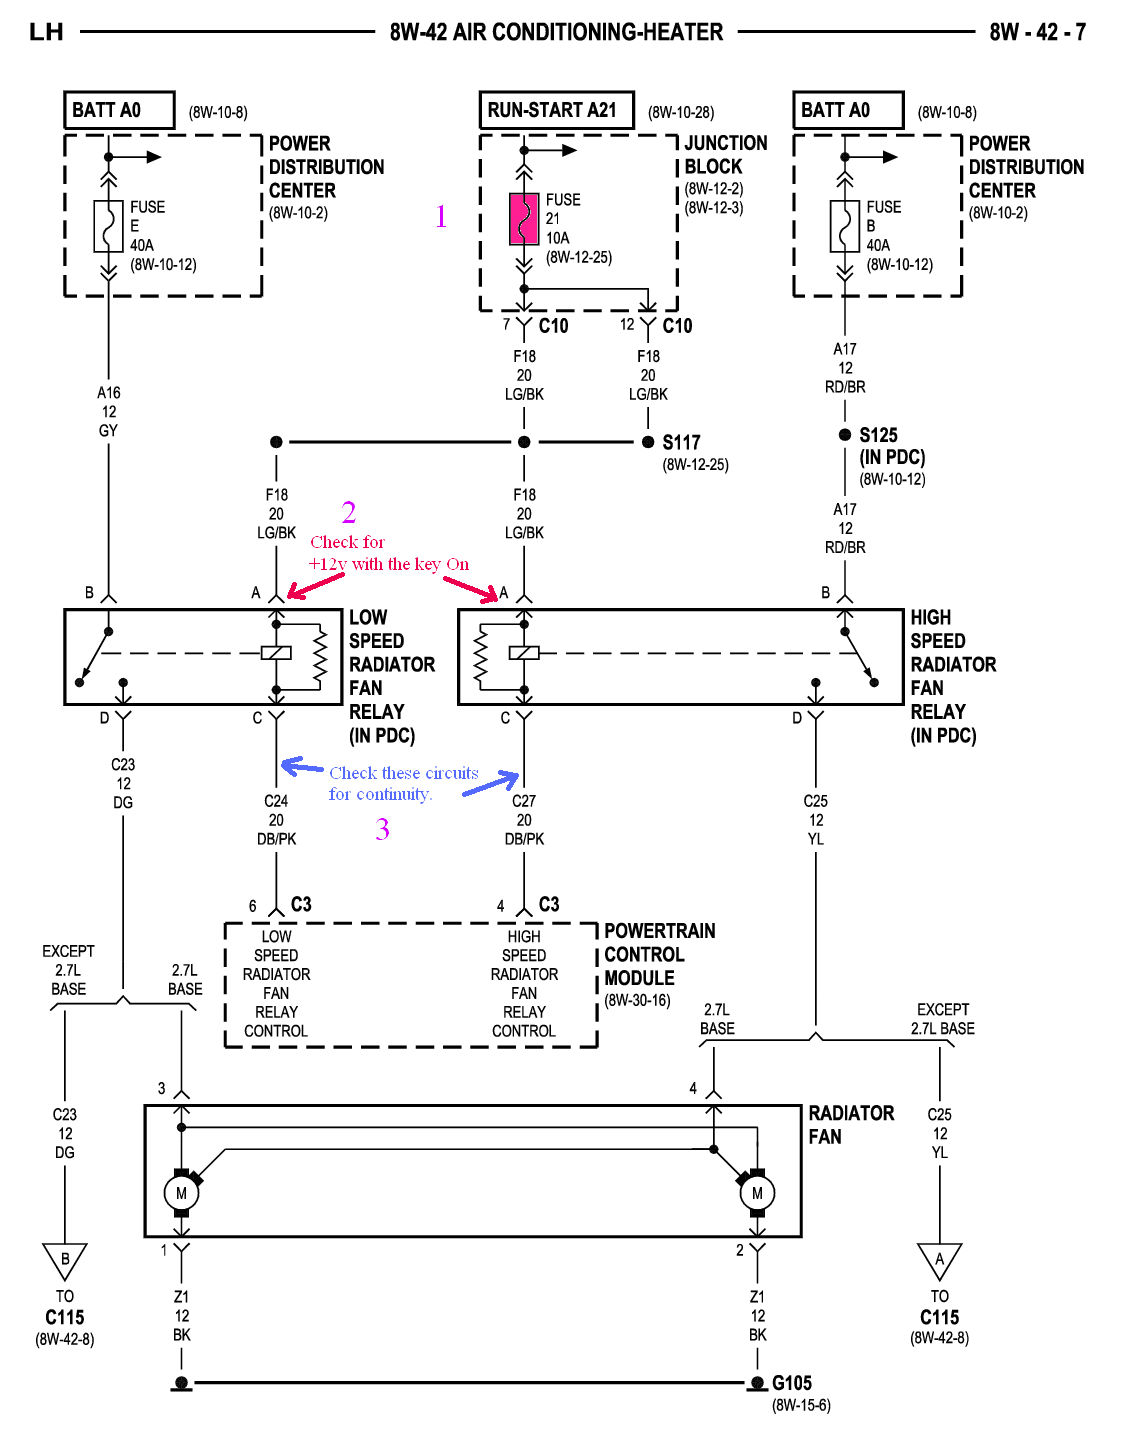 Wiring Diagrams For Chrysler Concorde Bookmark About Diagram 97 Cirrus Engine Schematics Rh 11 8 12 Jacqueline Helm De 1997